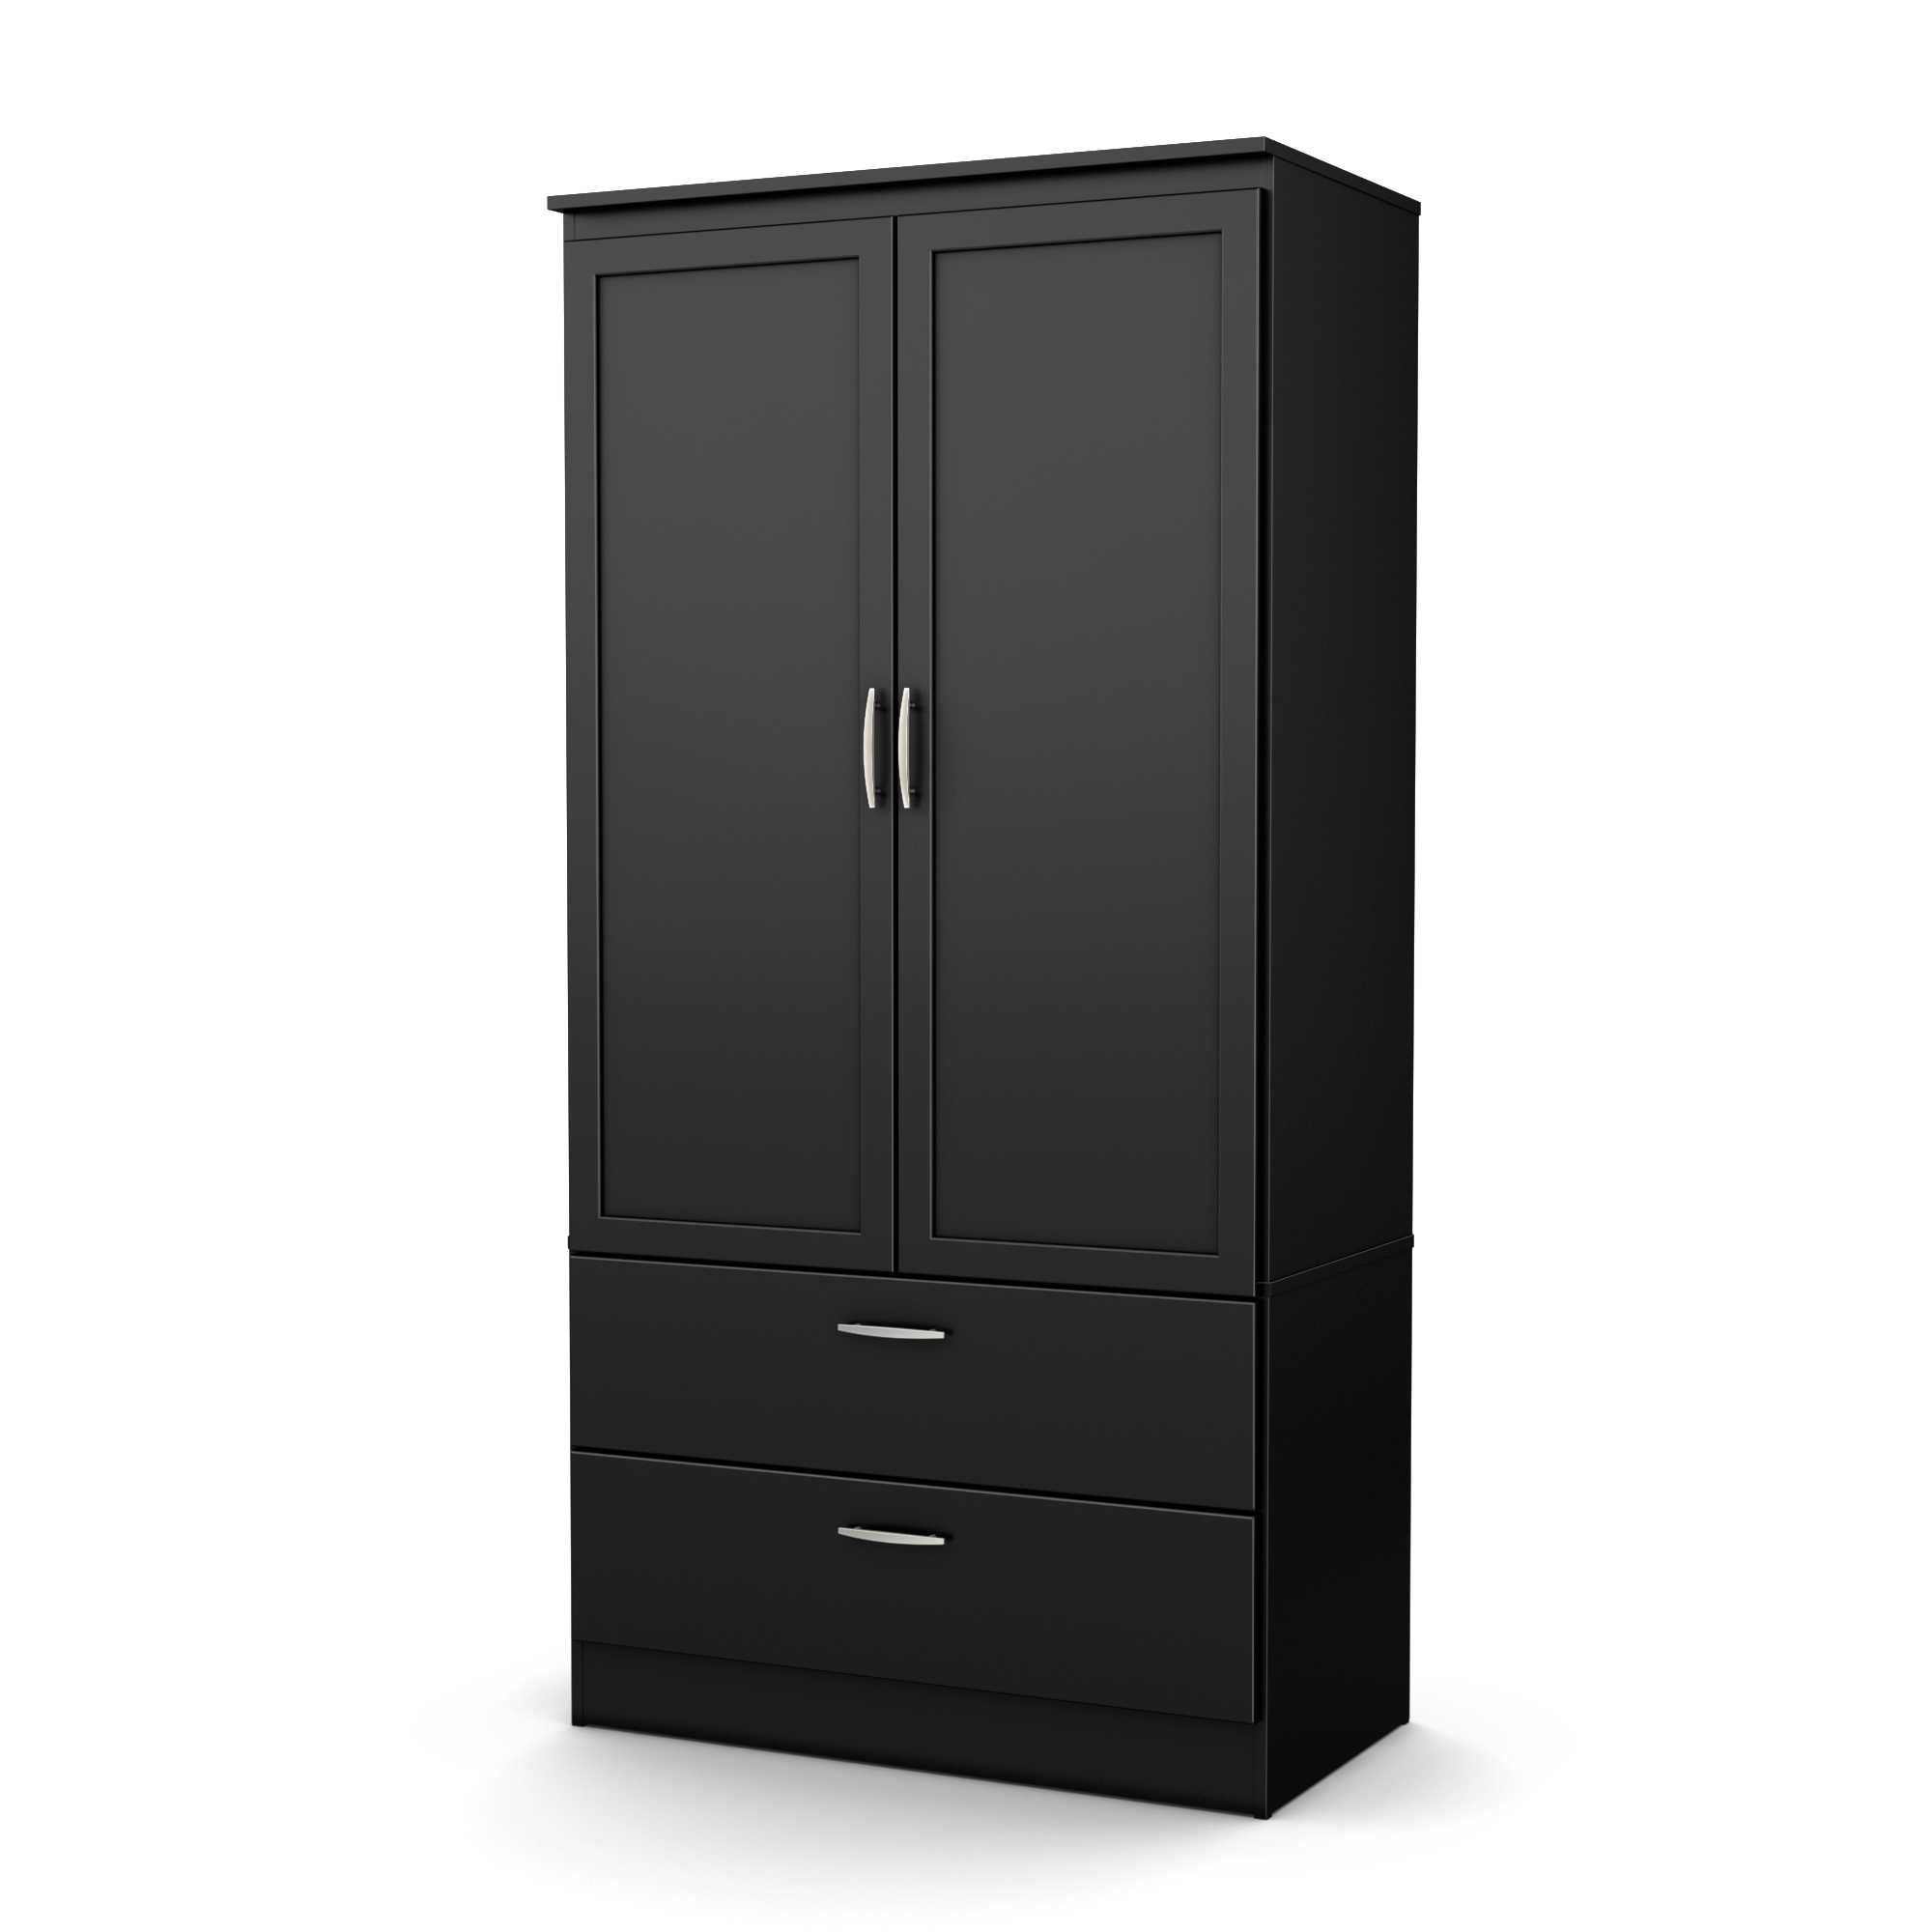 Merveilleux South Shore Acapella Wardrobe Armoire, Multiple Finishes